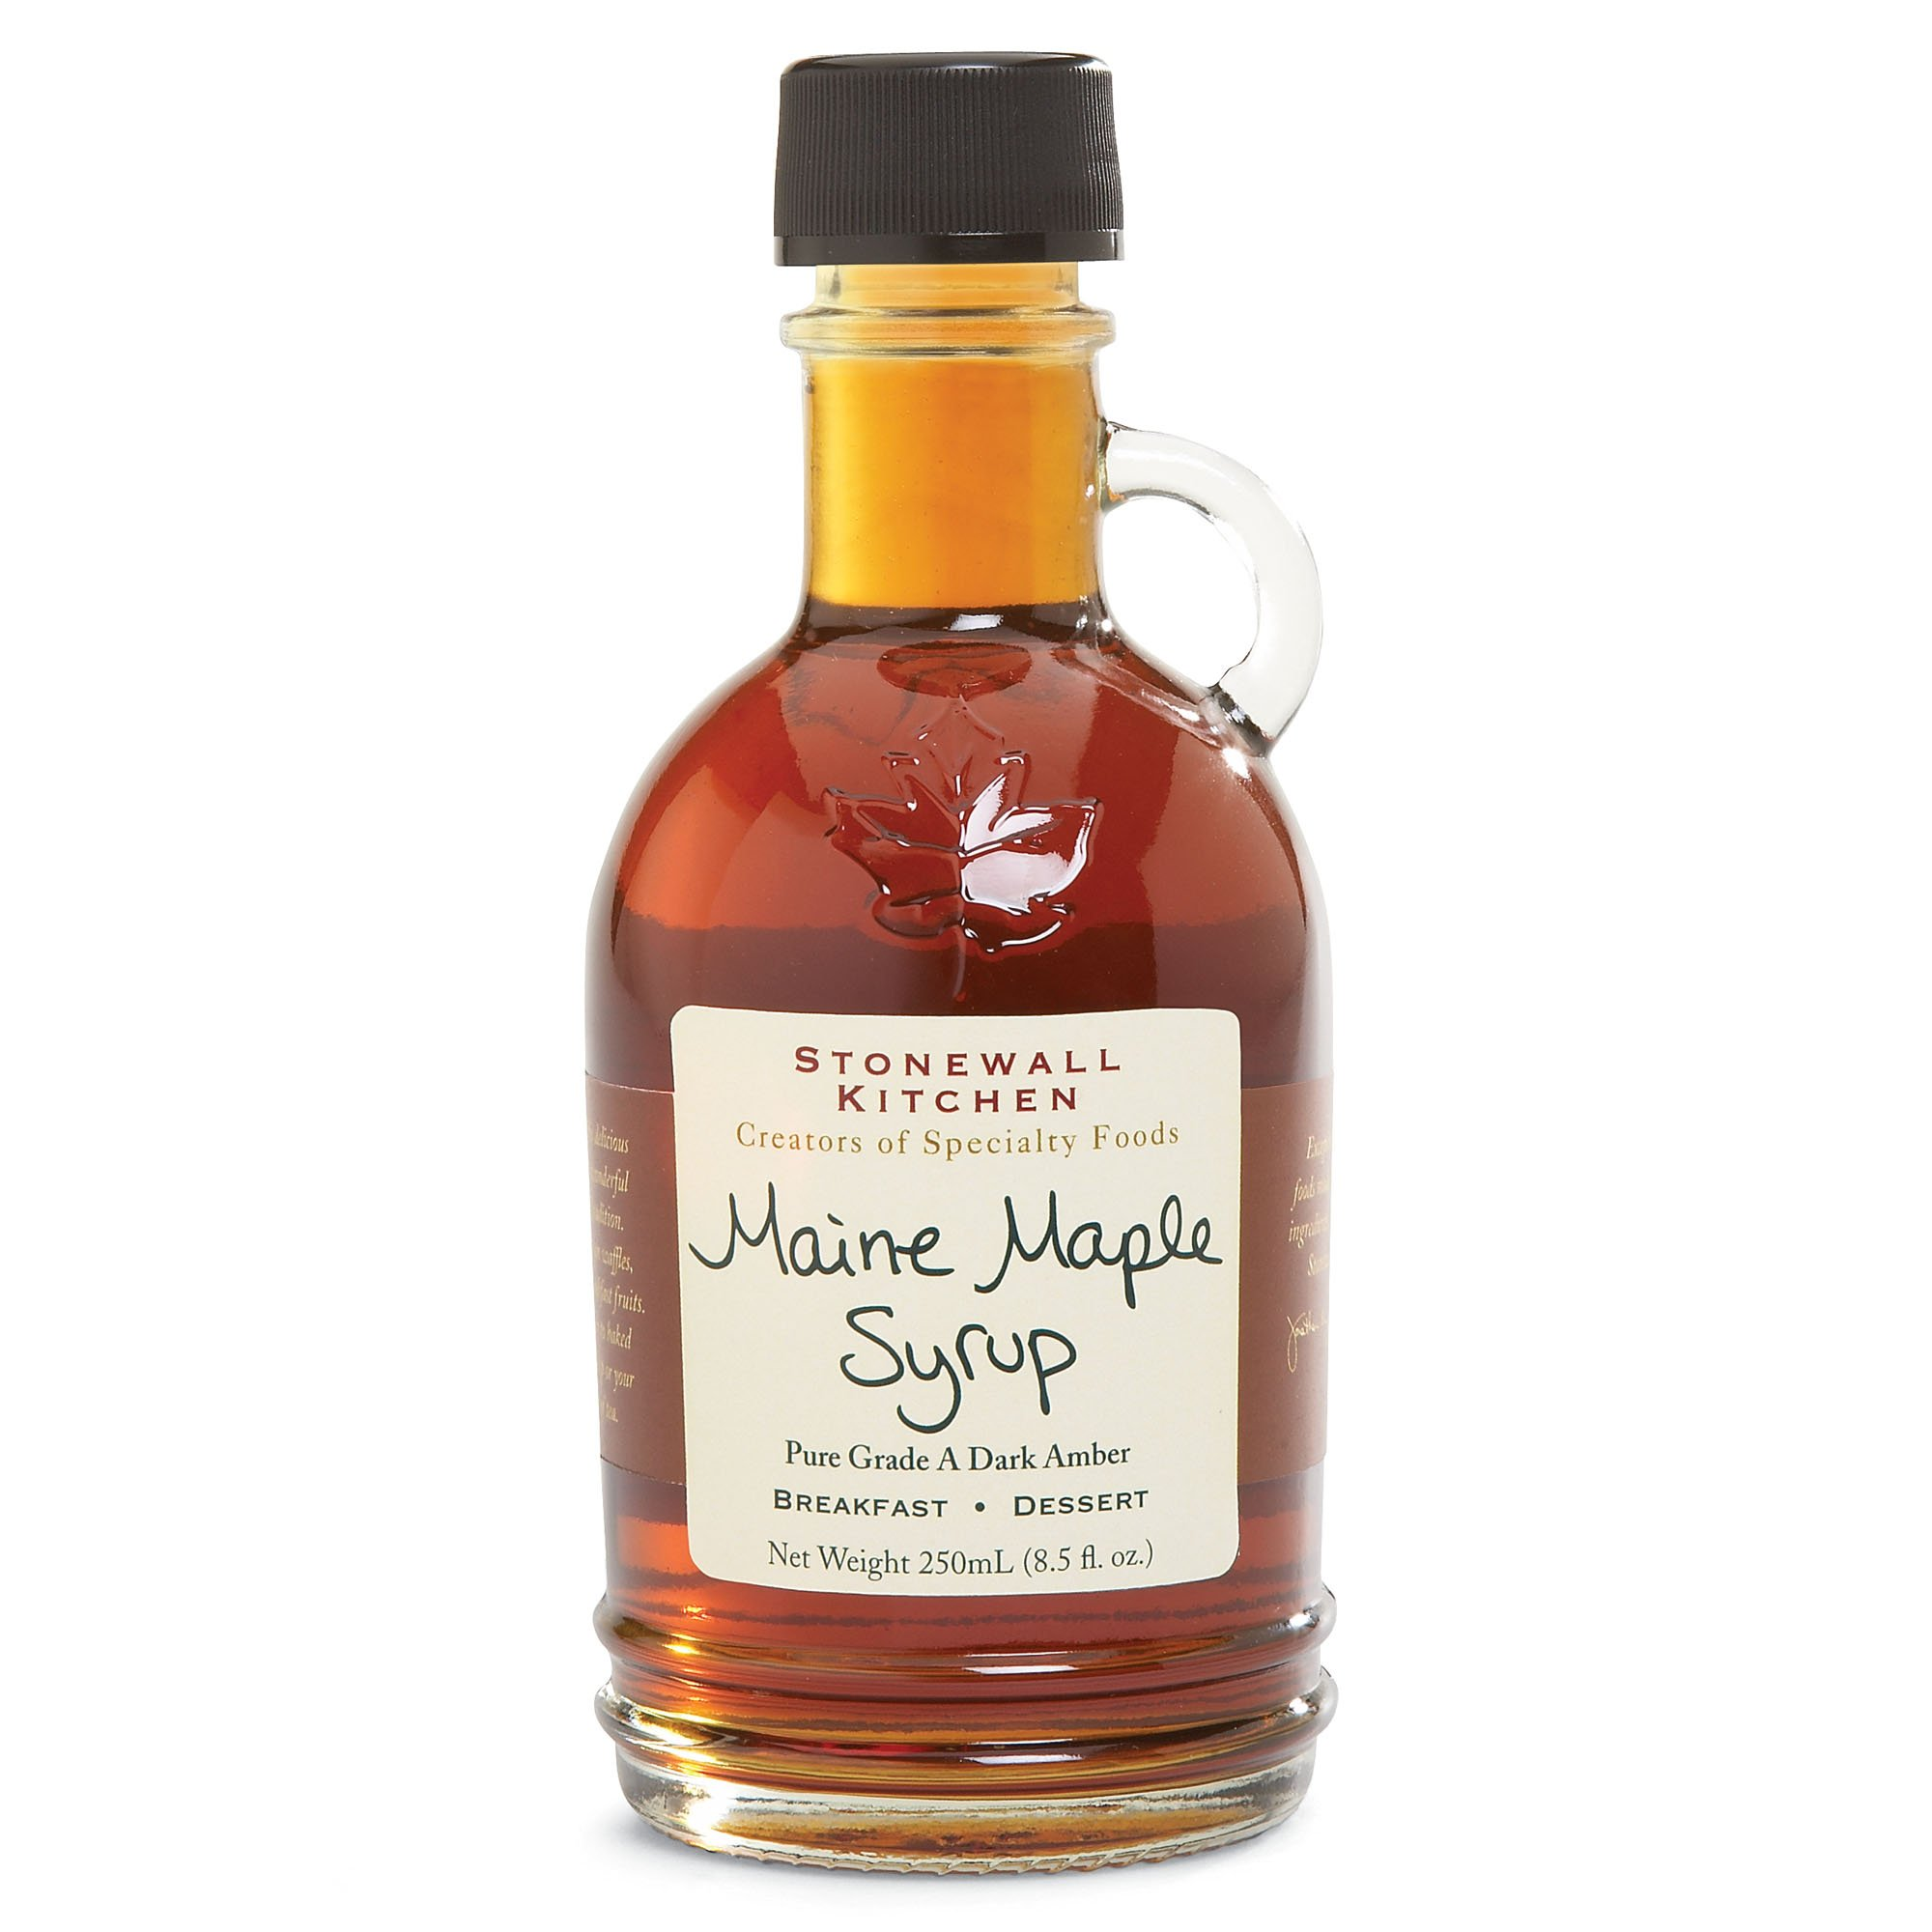 Stonewall Kitchens Maine Maple Syrup 8.5-Ounce Jars (Pack of 6) by Stonewall Kitchens